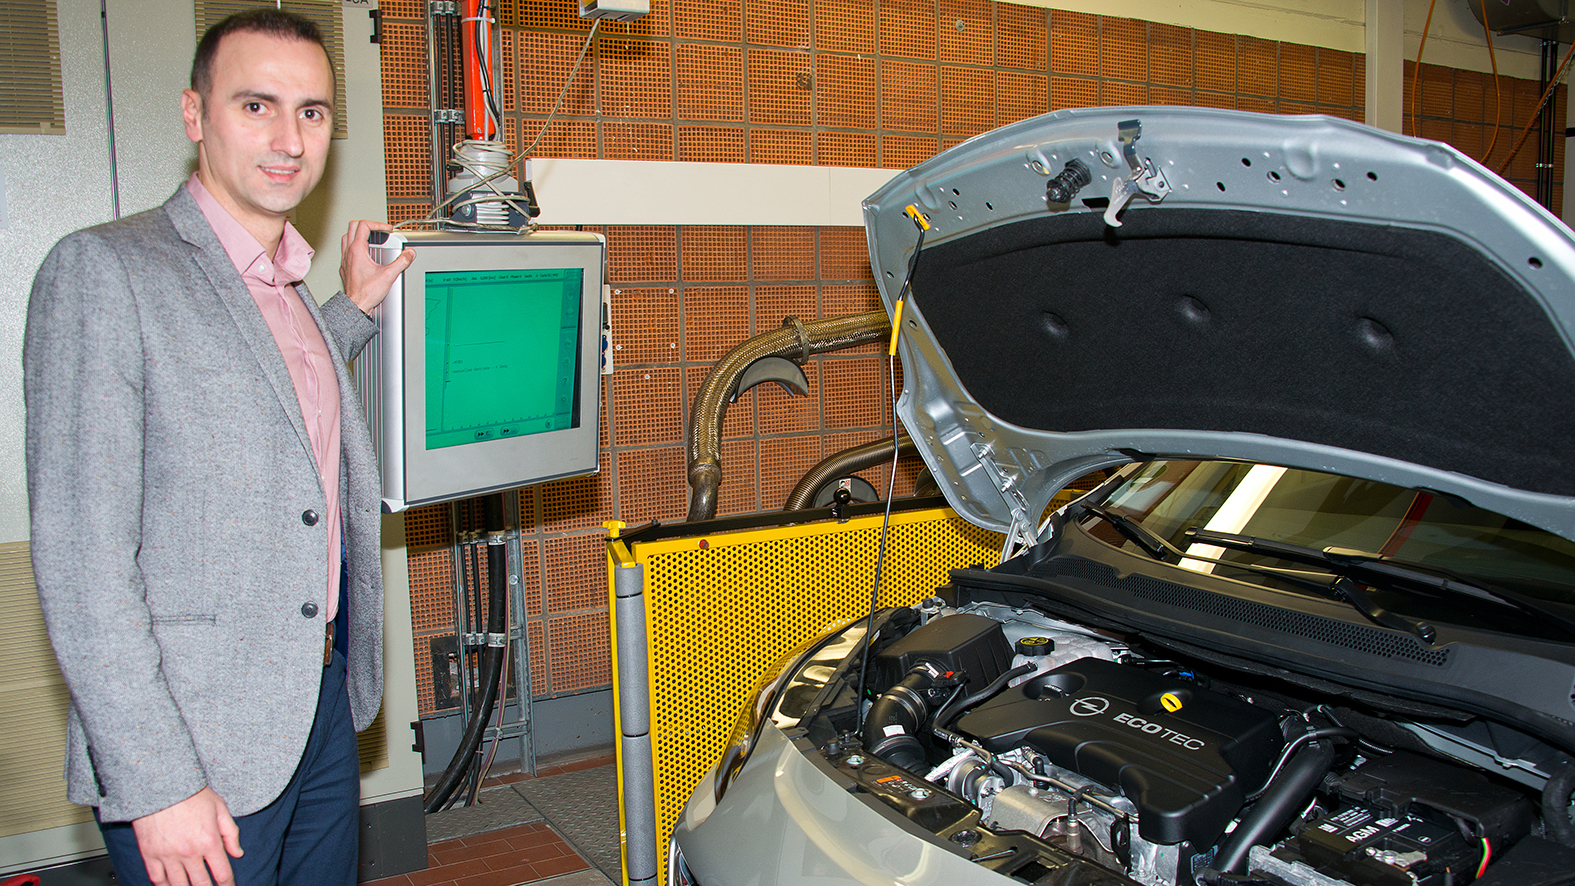 Vural Yanik, aged 37, oversees a Conformity of Production (COP) test, where an engine's consumption and emissions are checked